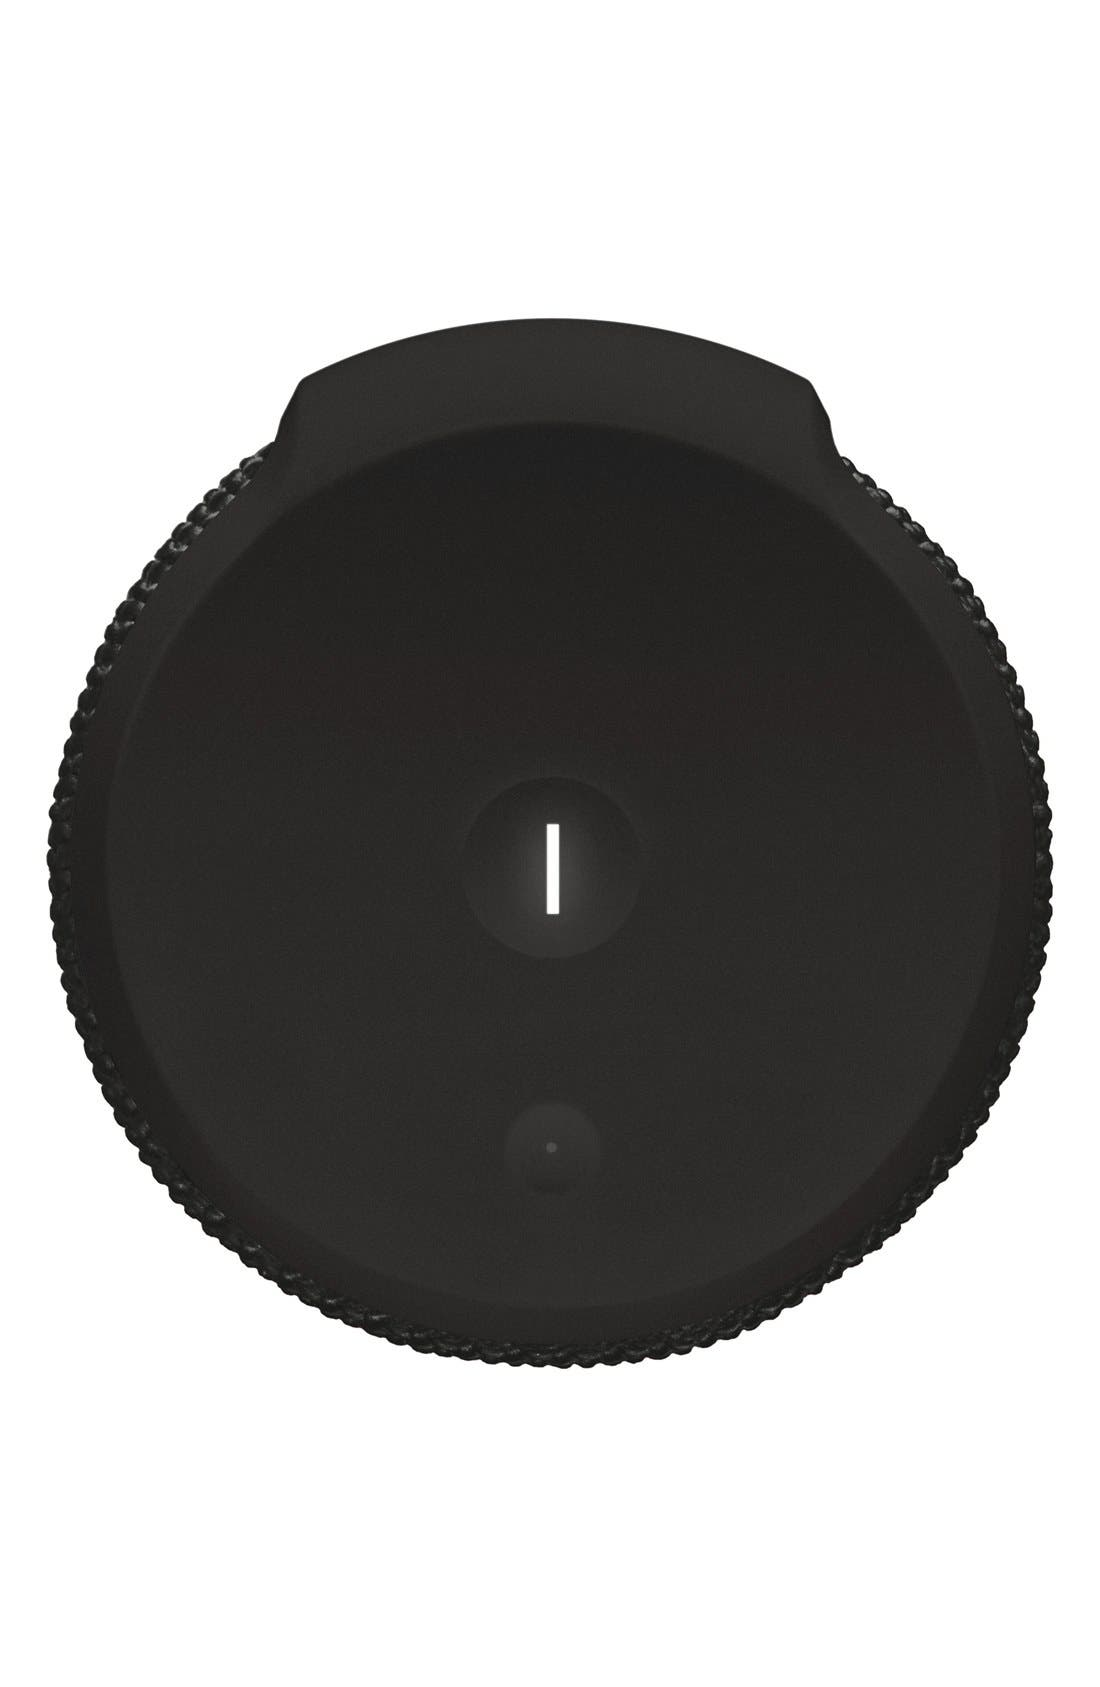 Boom 2 Wireless Bluetooth<sup>®</sup> Speaker,                             Alternate thumbnail 5, color,                             Black/ Grey